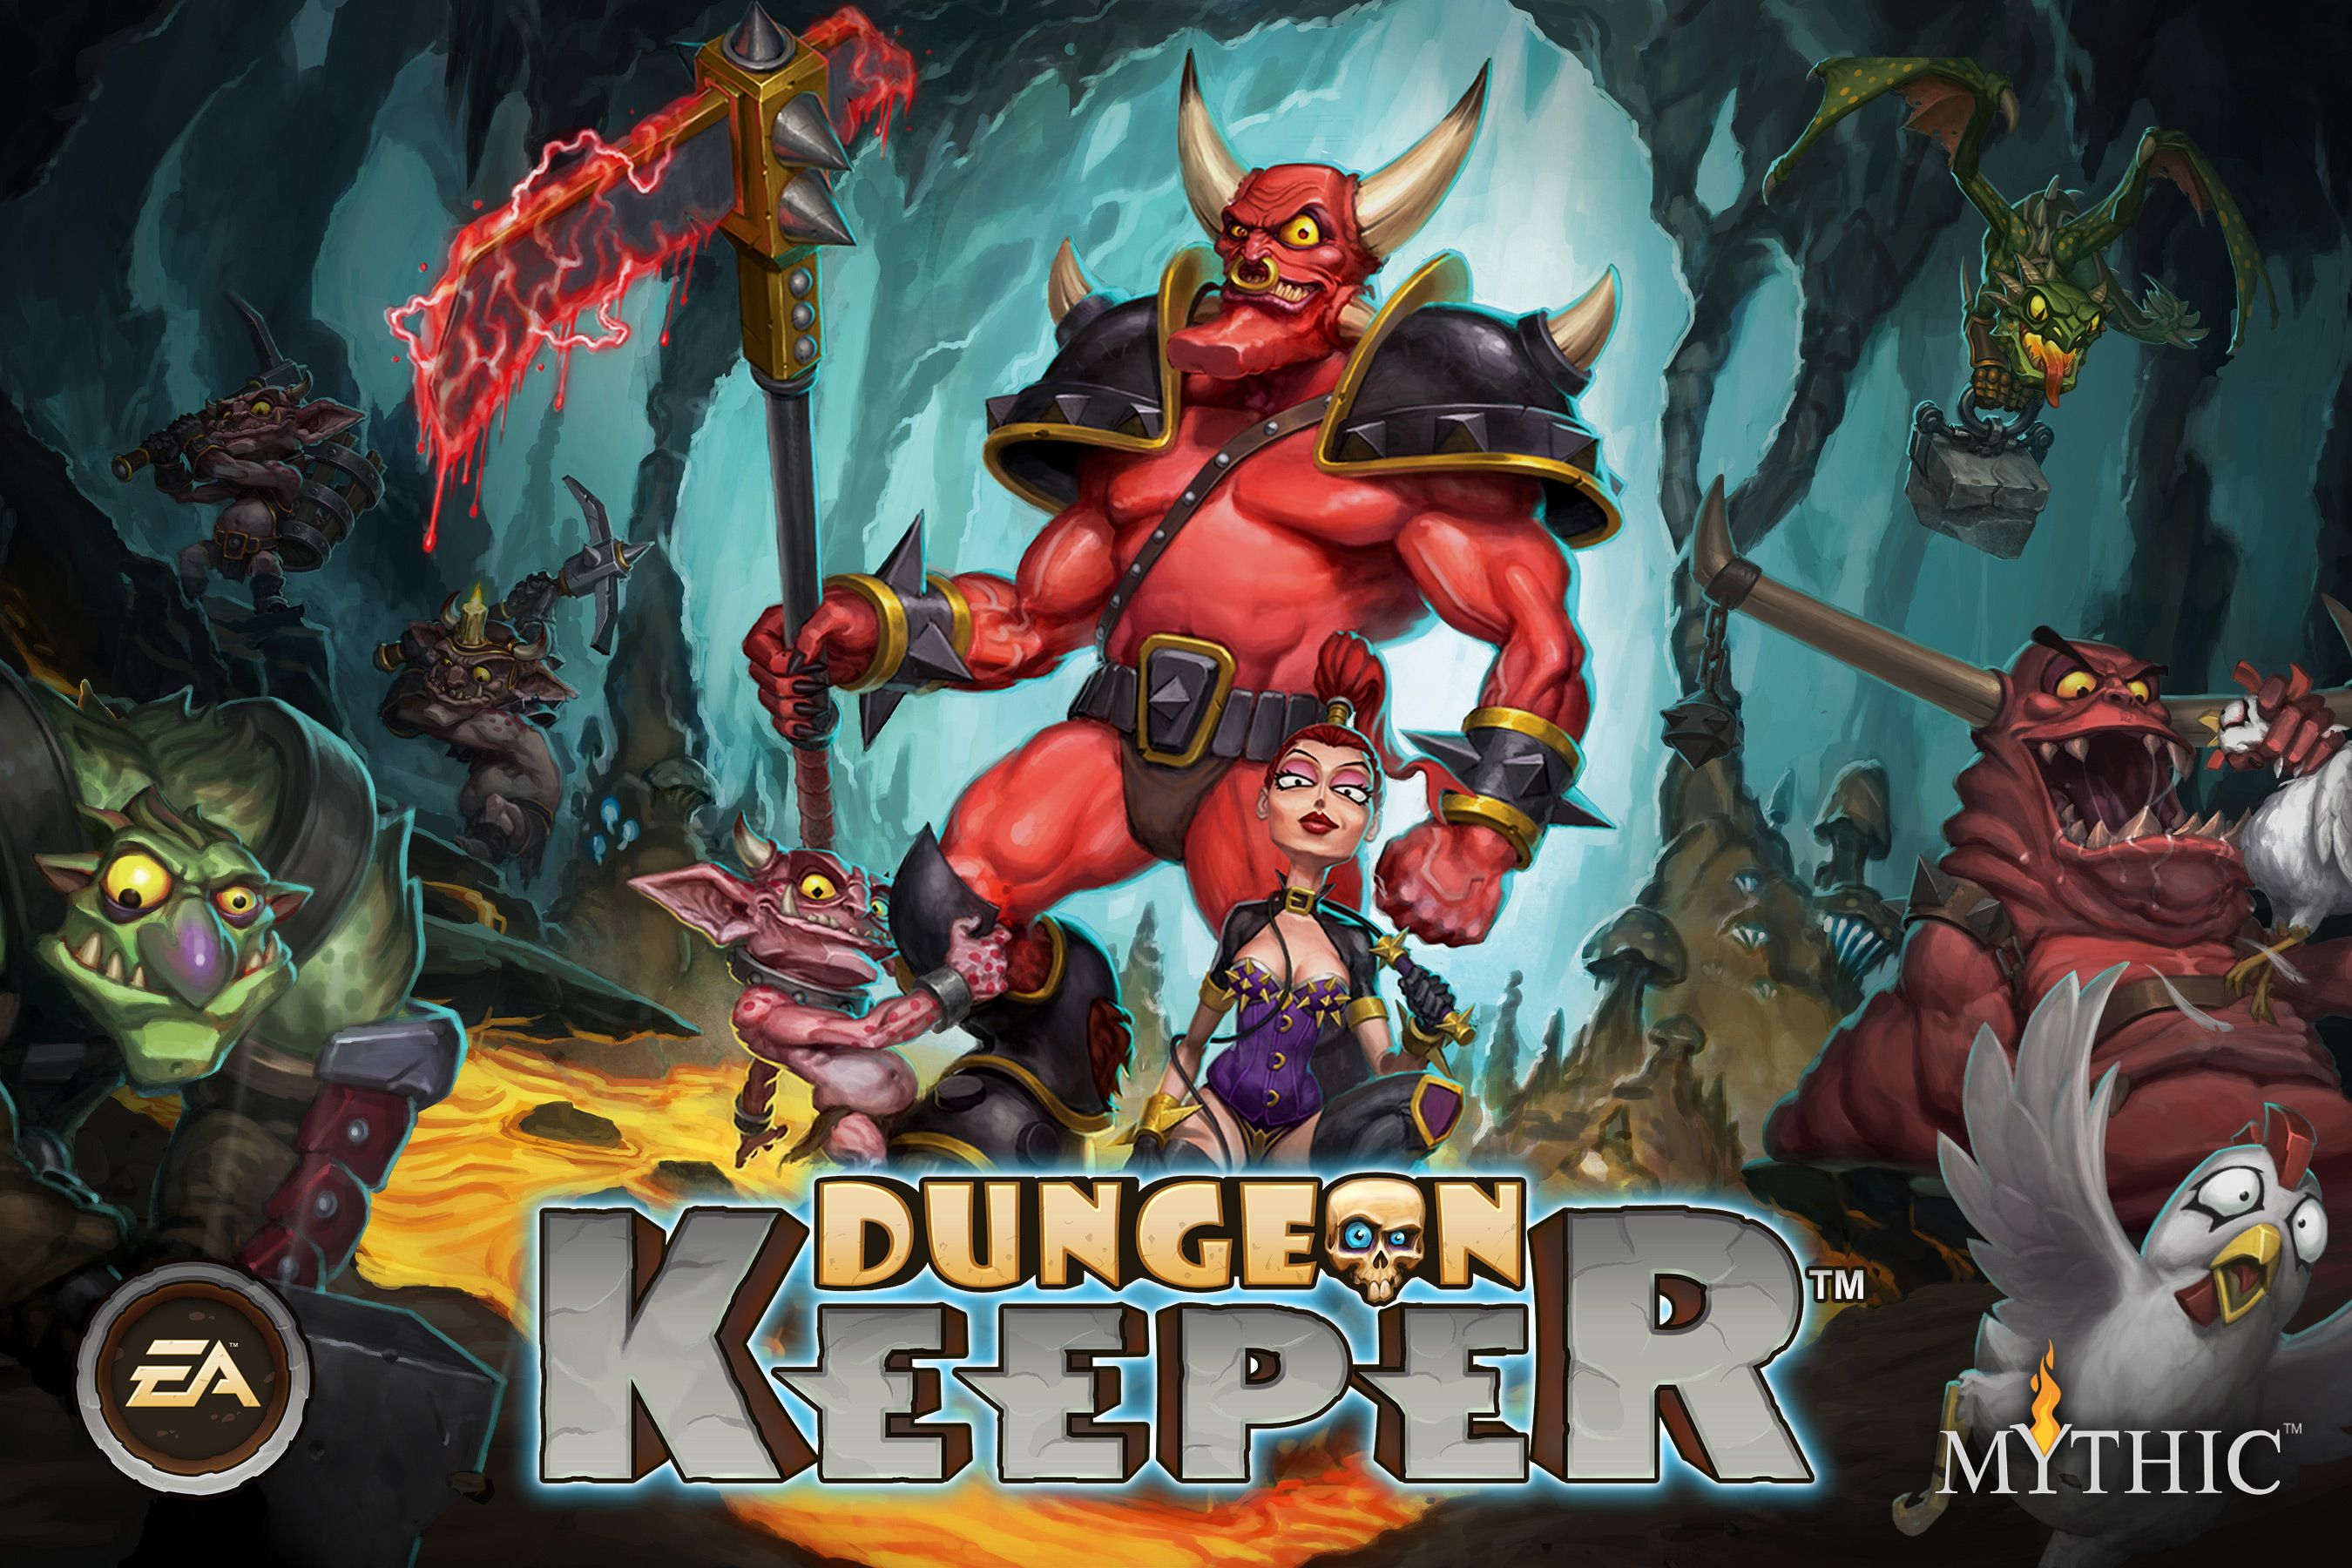 Dungeon Keeper out now on iOS, Android